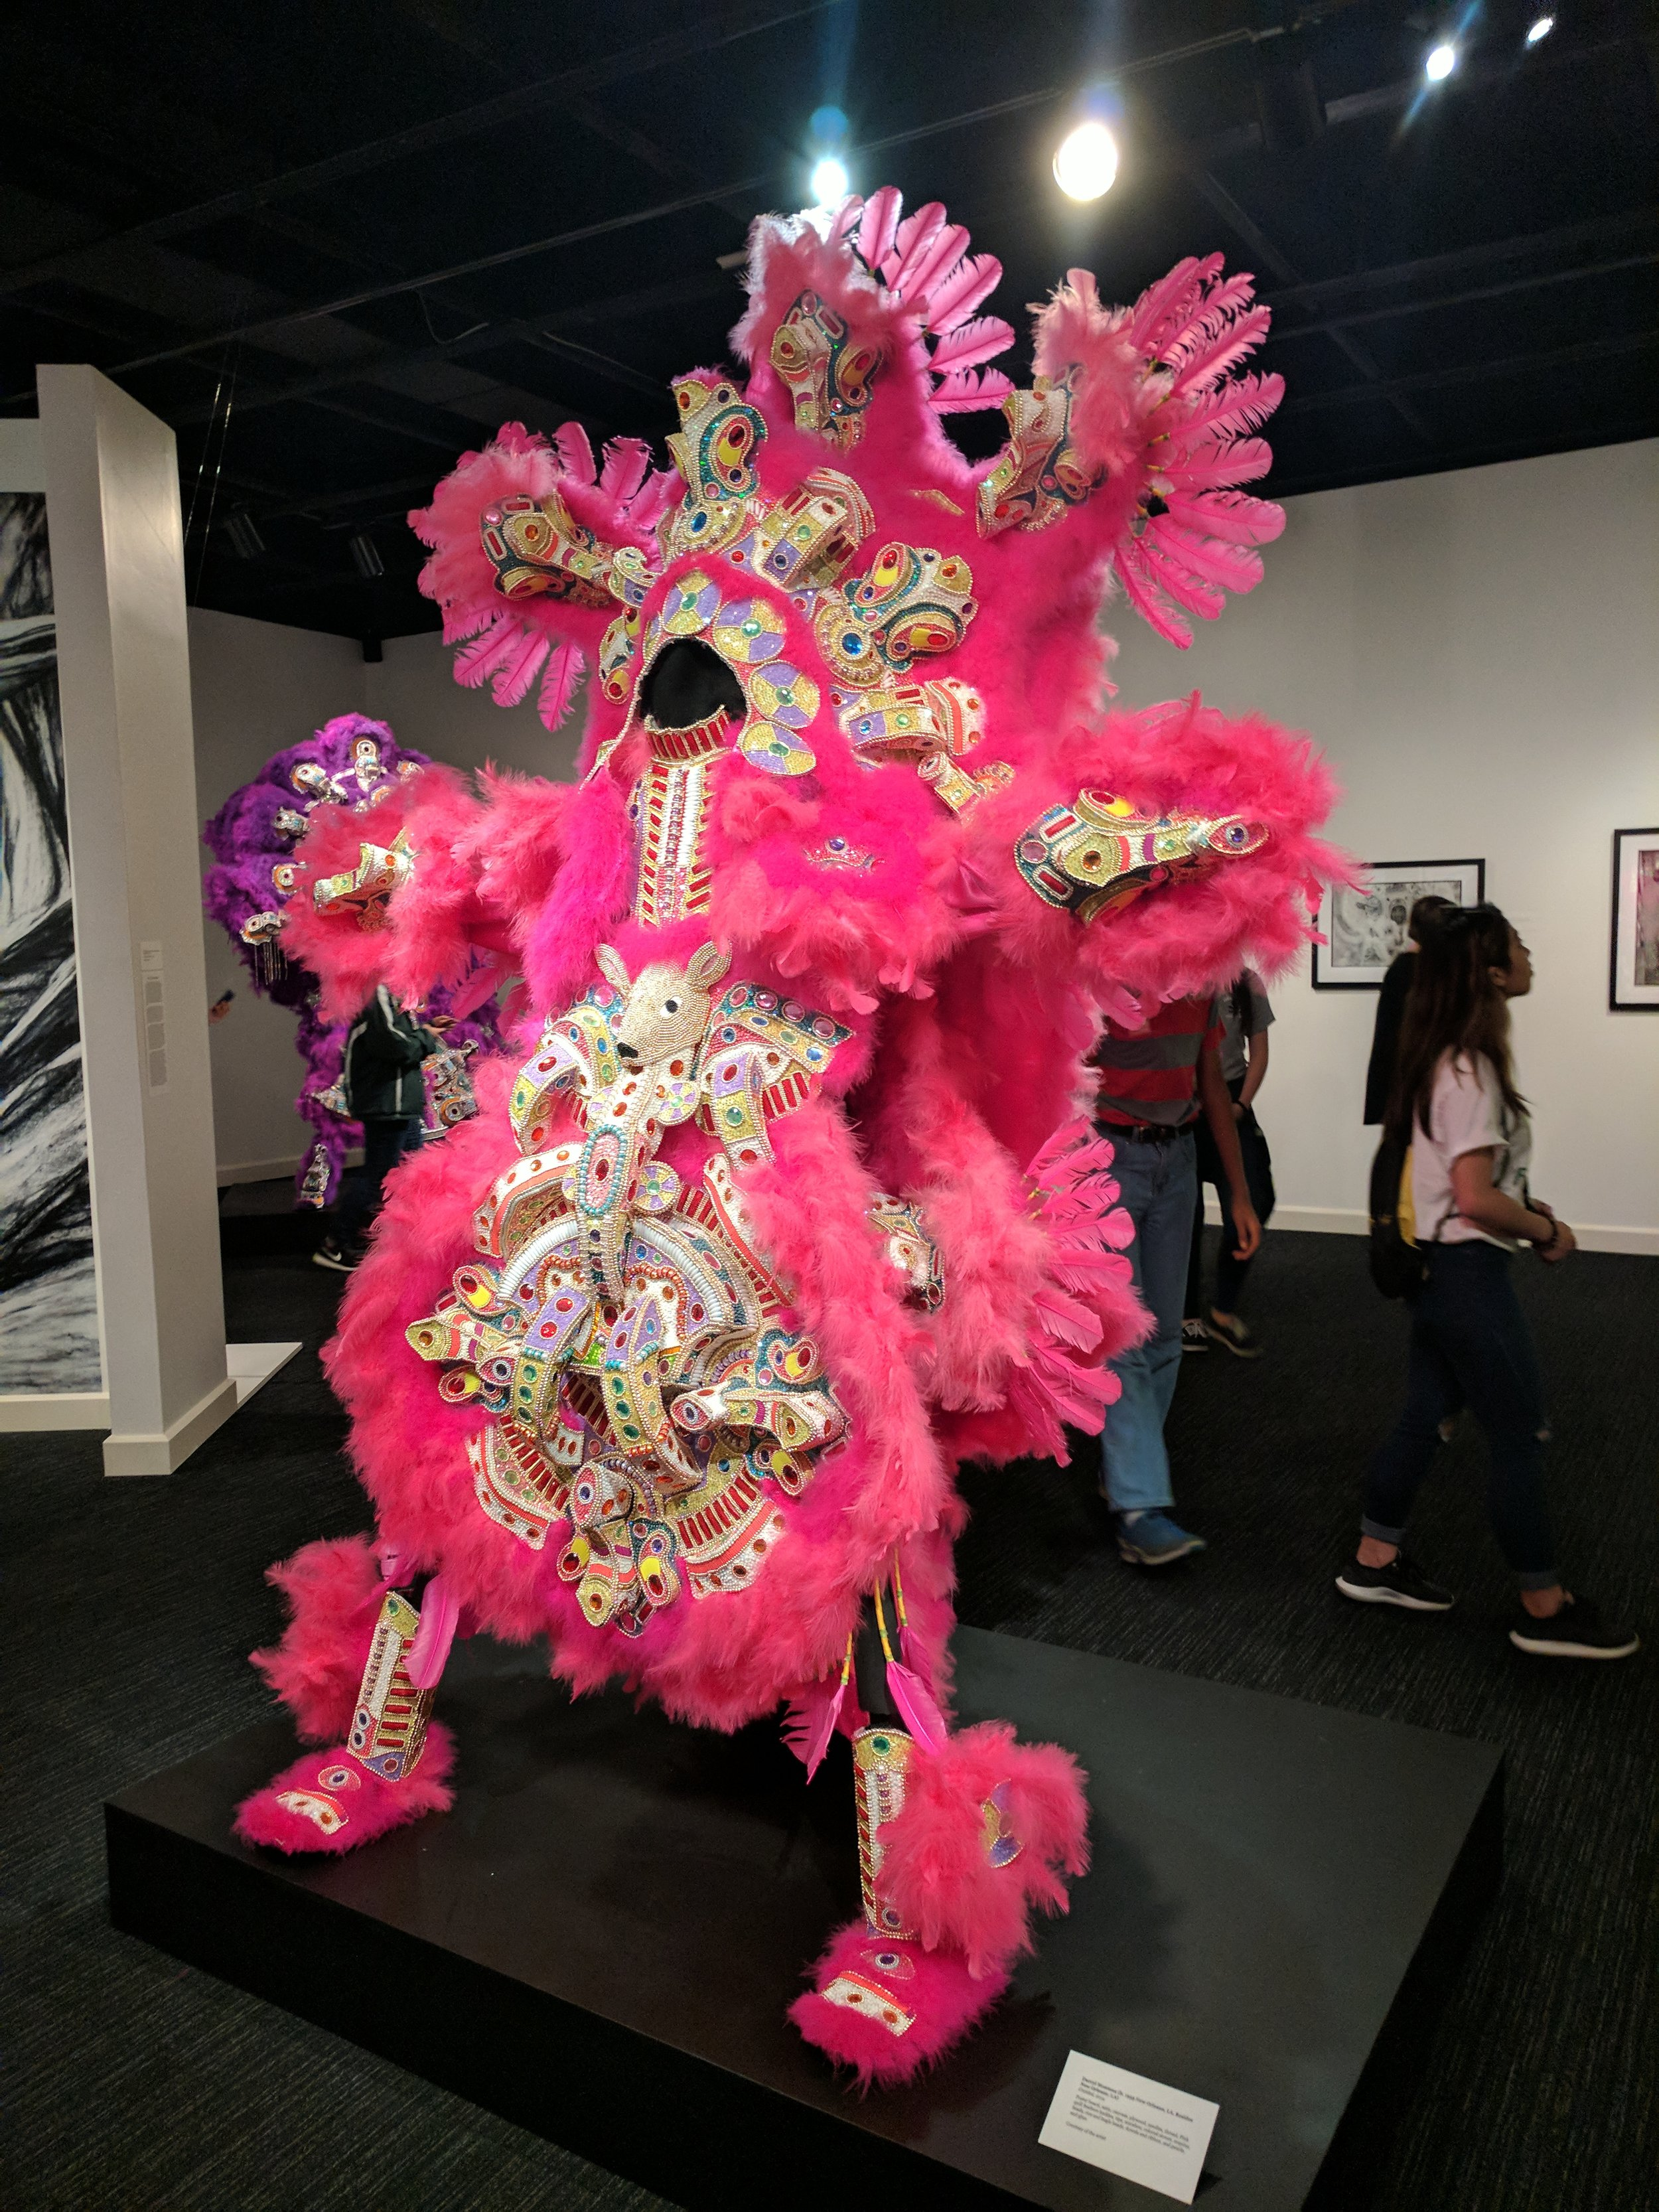 Big Chief Darryl Montana, Installation View at New Orleans Jazz Museum